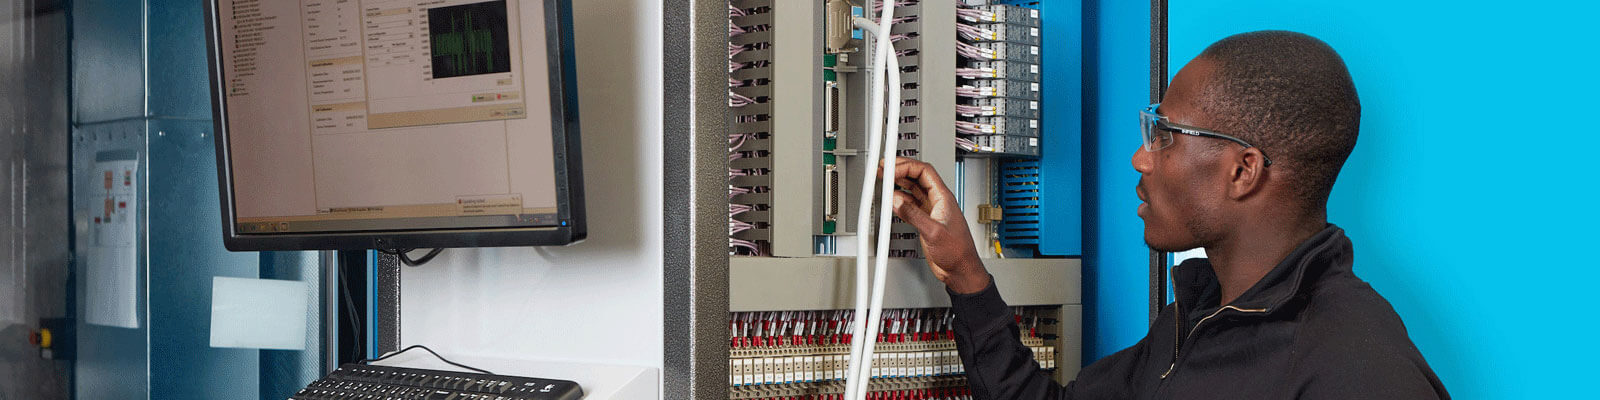 KGW Electrical provides Electrical Installations